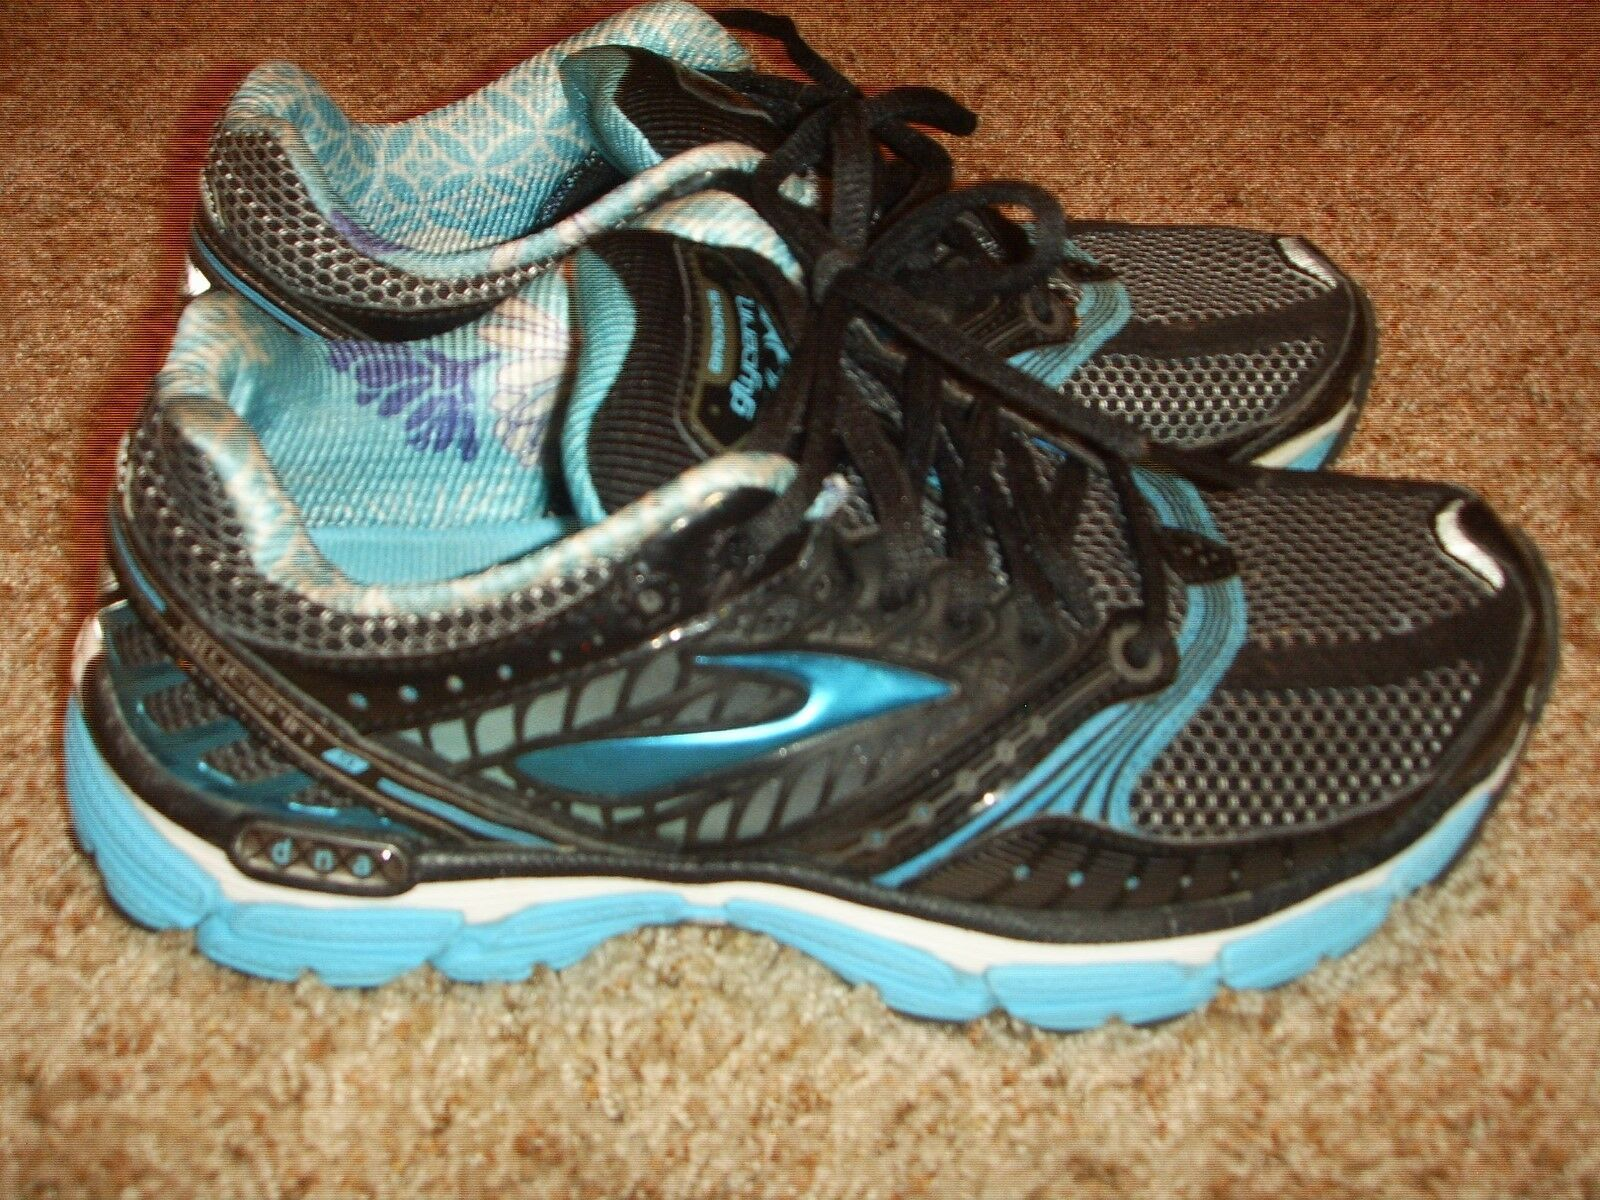 BROOKS Glycerin 9 Running Shoes Black Blue Womens Size 8.5M